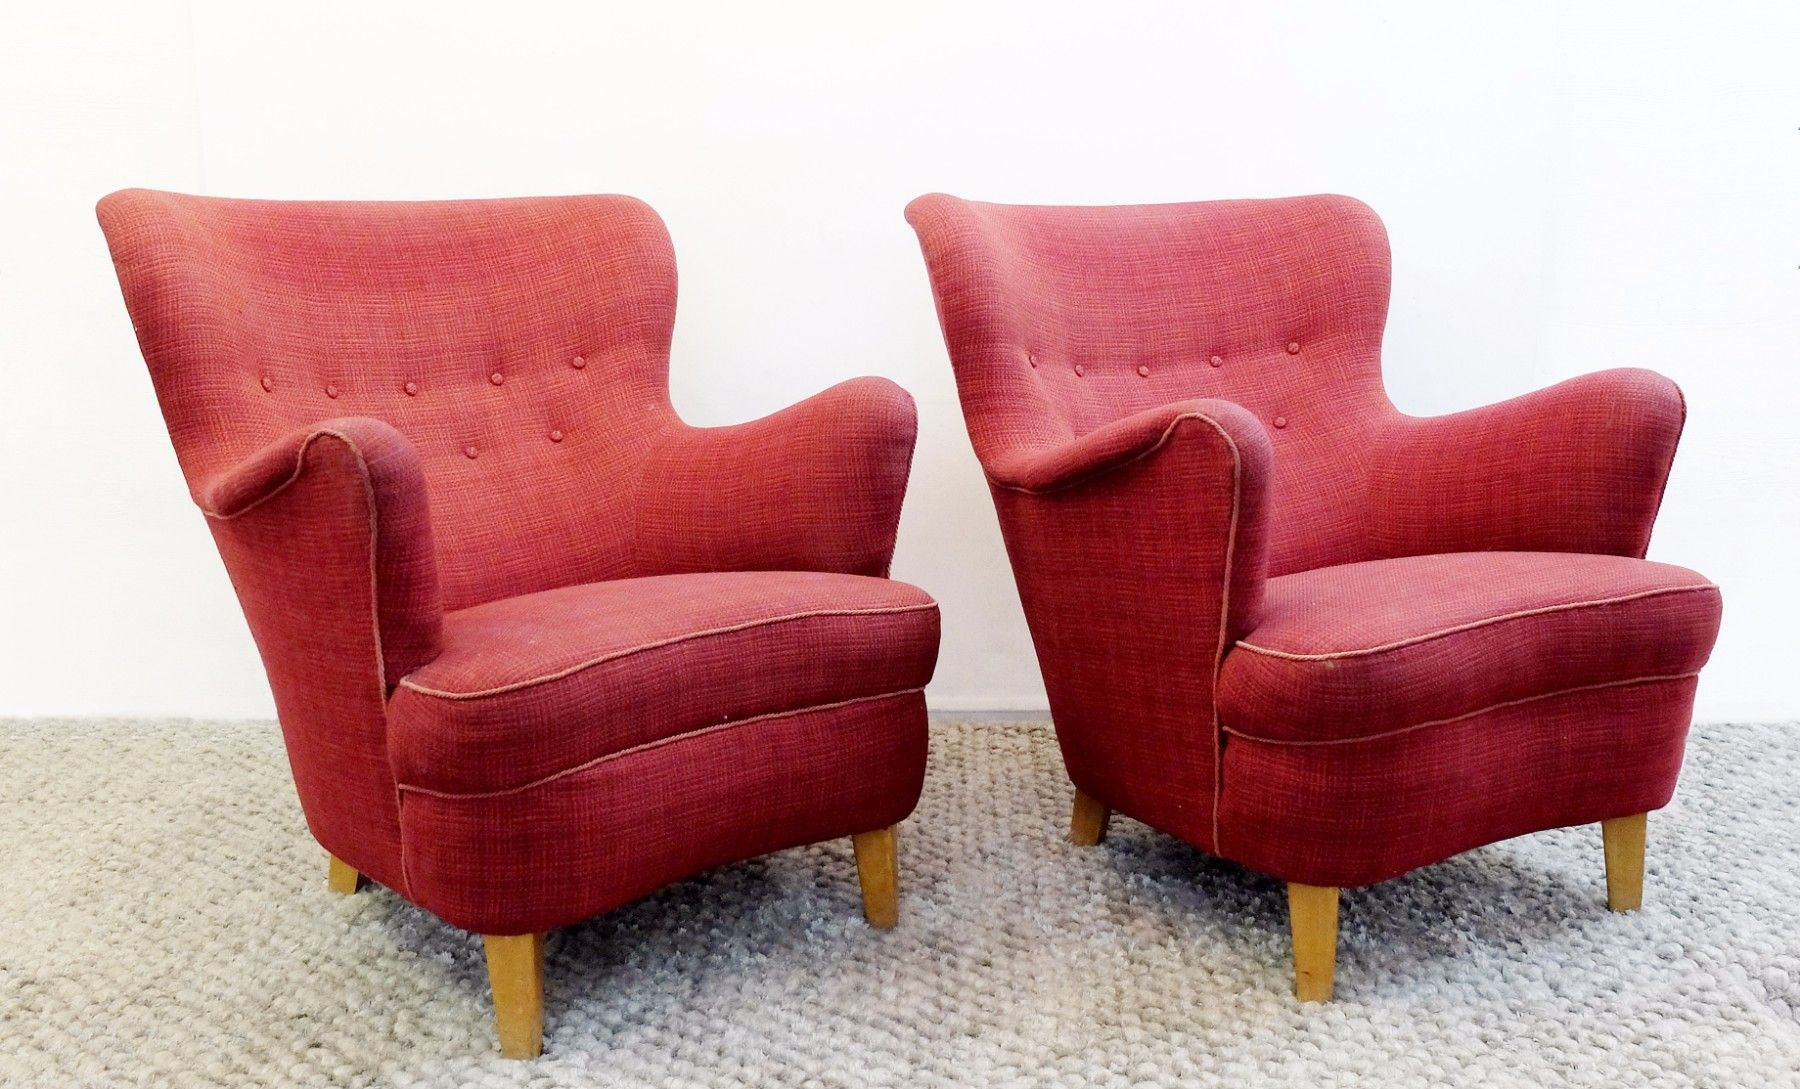 Vintage Armchairs By Carl Malmsten For O.H. Sjogren, Set Of 2 For Sale At  Pamono